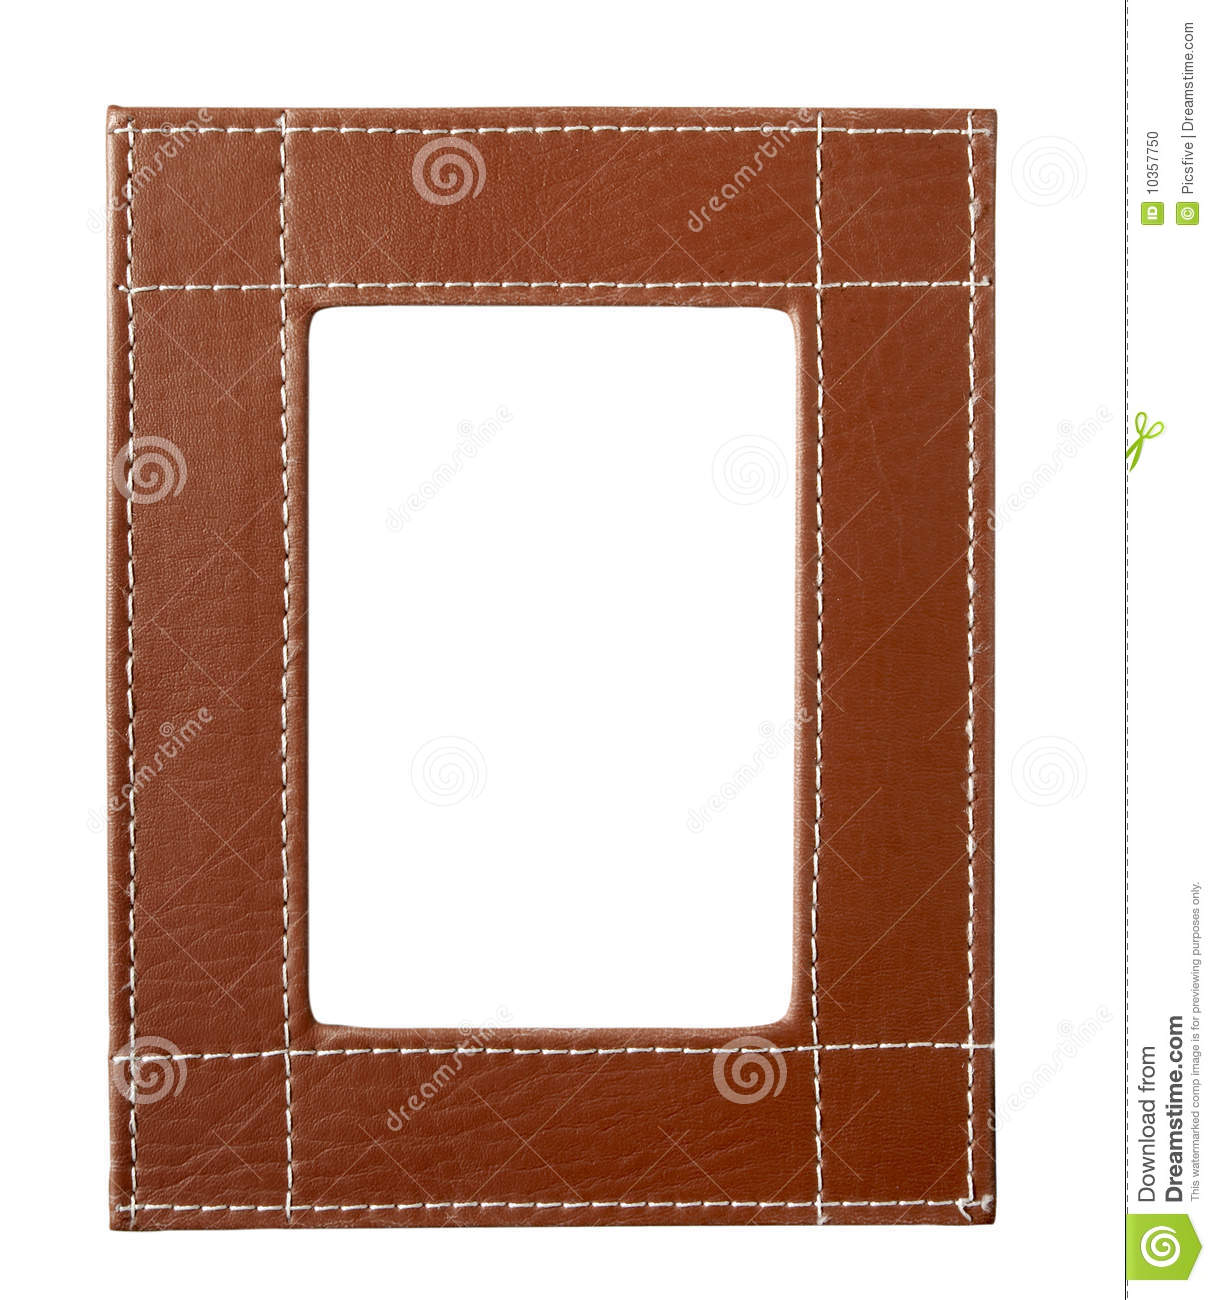 frame edges brown leather